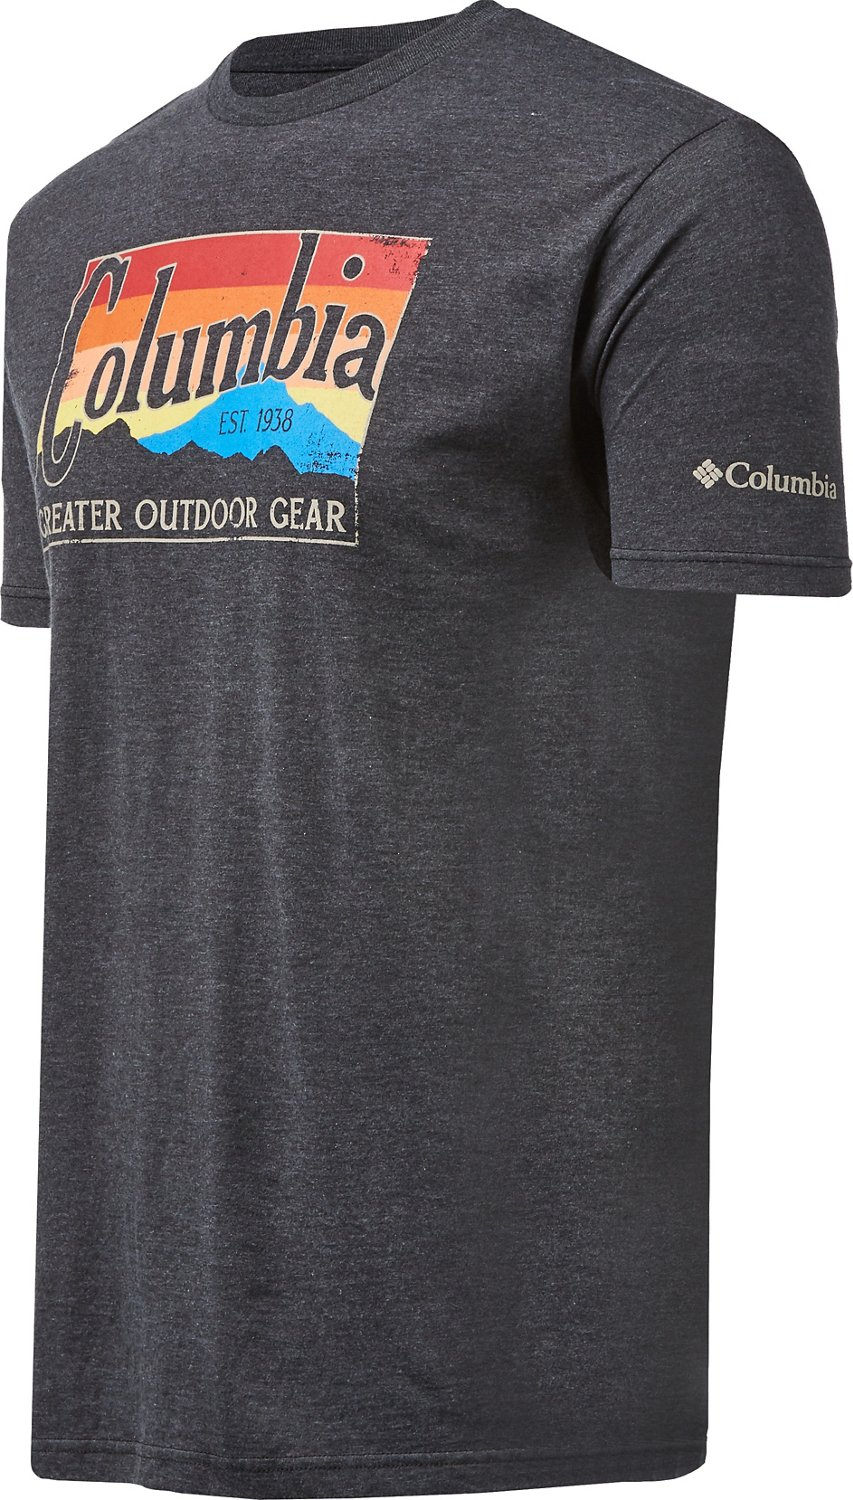 Display product reviews for Columbia Sportswear Men s CSC Perforated T-shirt 213464322088f